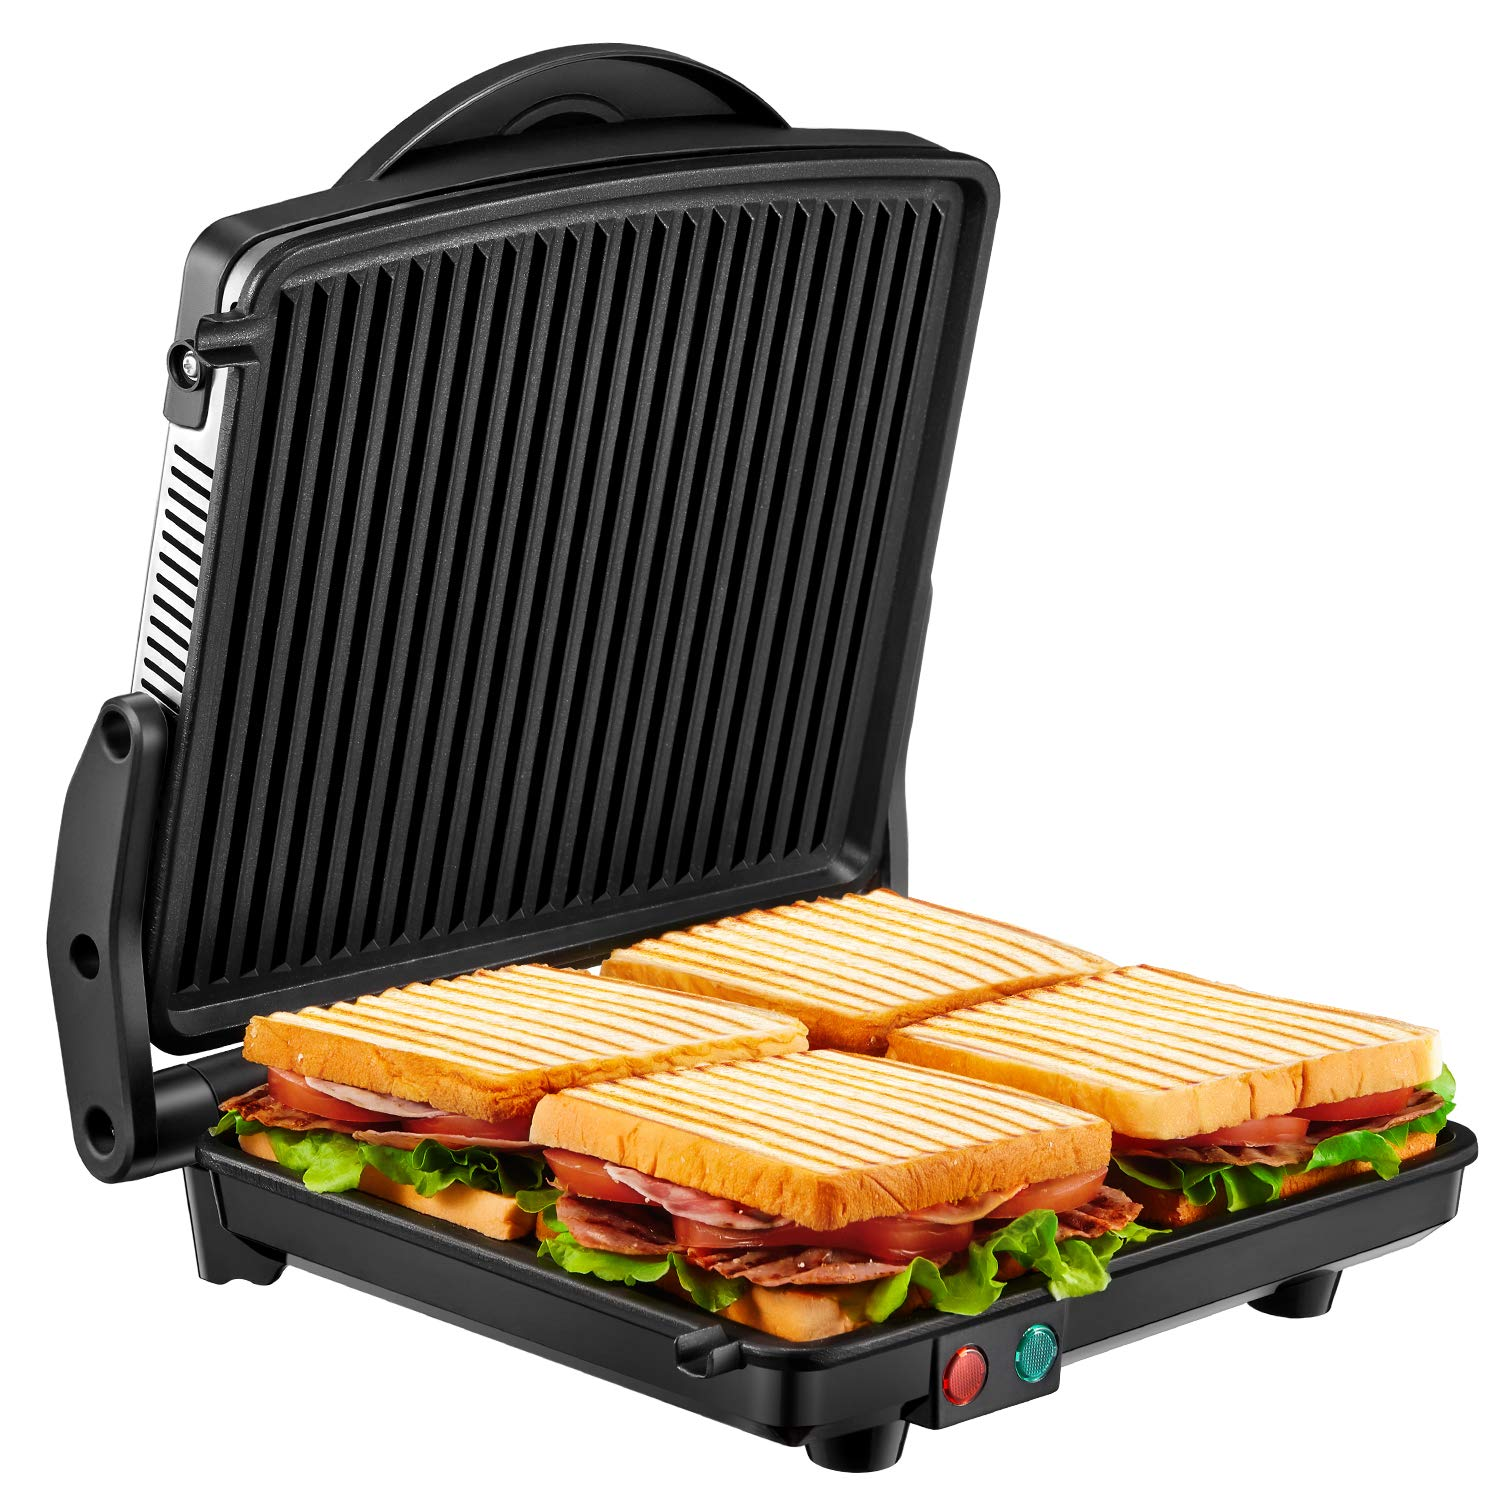 Kealive Panini Press Grill, 4-Slice Extra Large Gourmet Sandwich Maker Grill, Non-Stick Coated Plates, Opens 180 Degrees to Fit Any Type or Size of Food, Stainless Steel Surface and Drip Tray, 1200W by Kealive (Image #1)